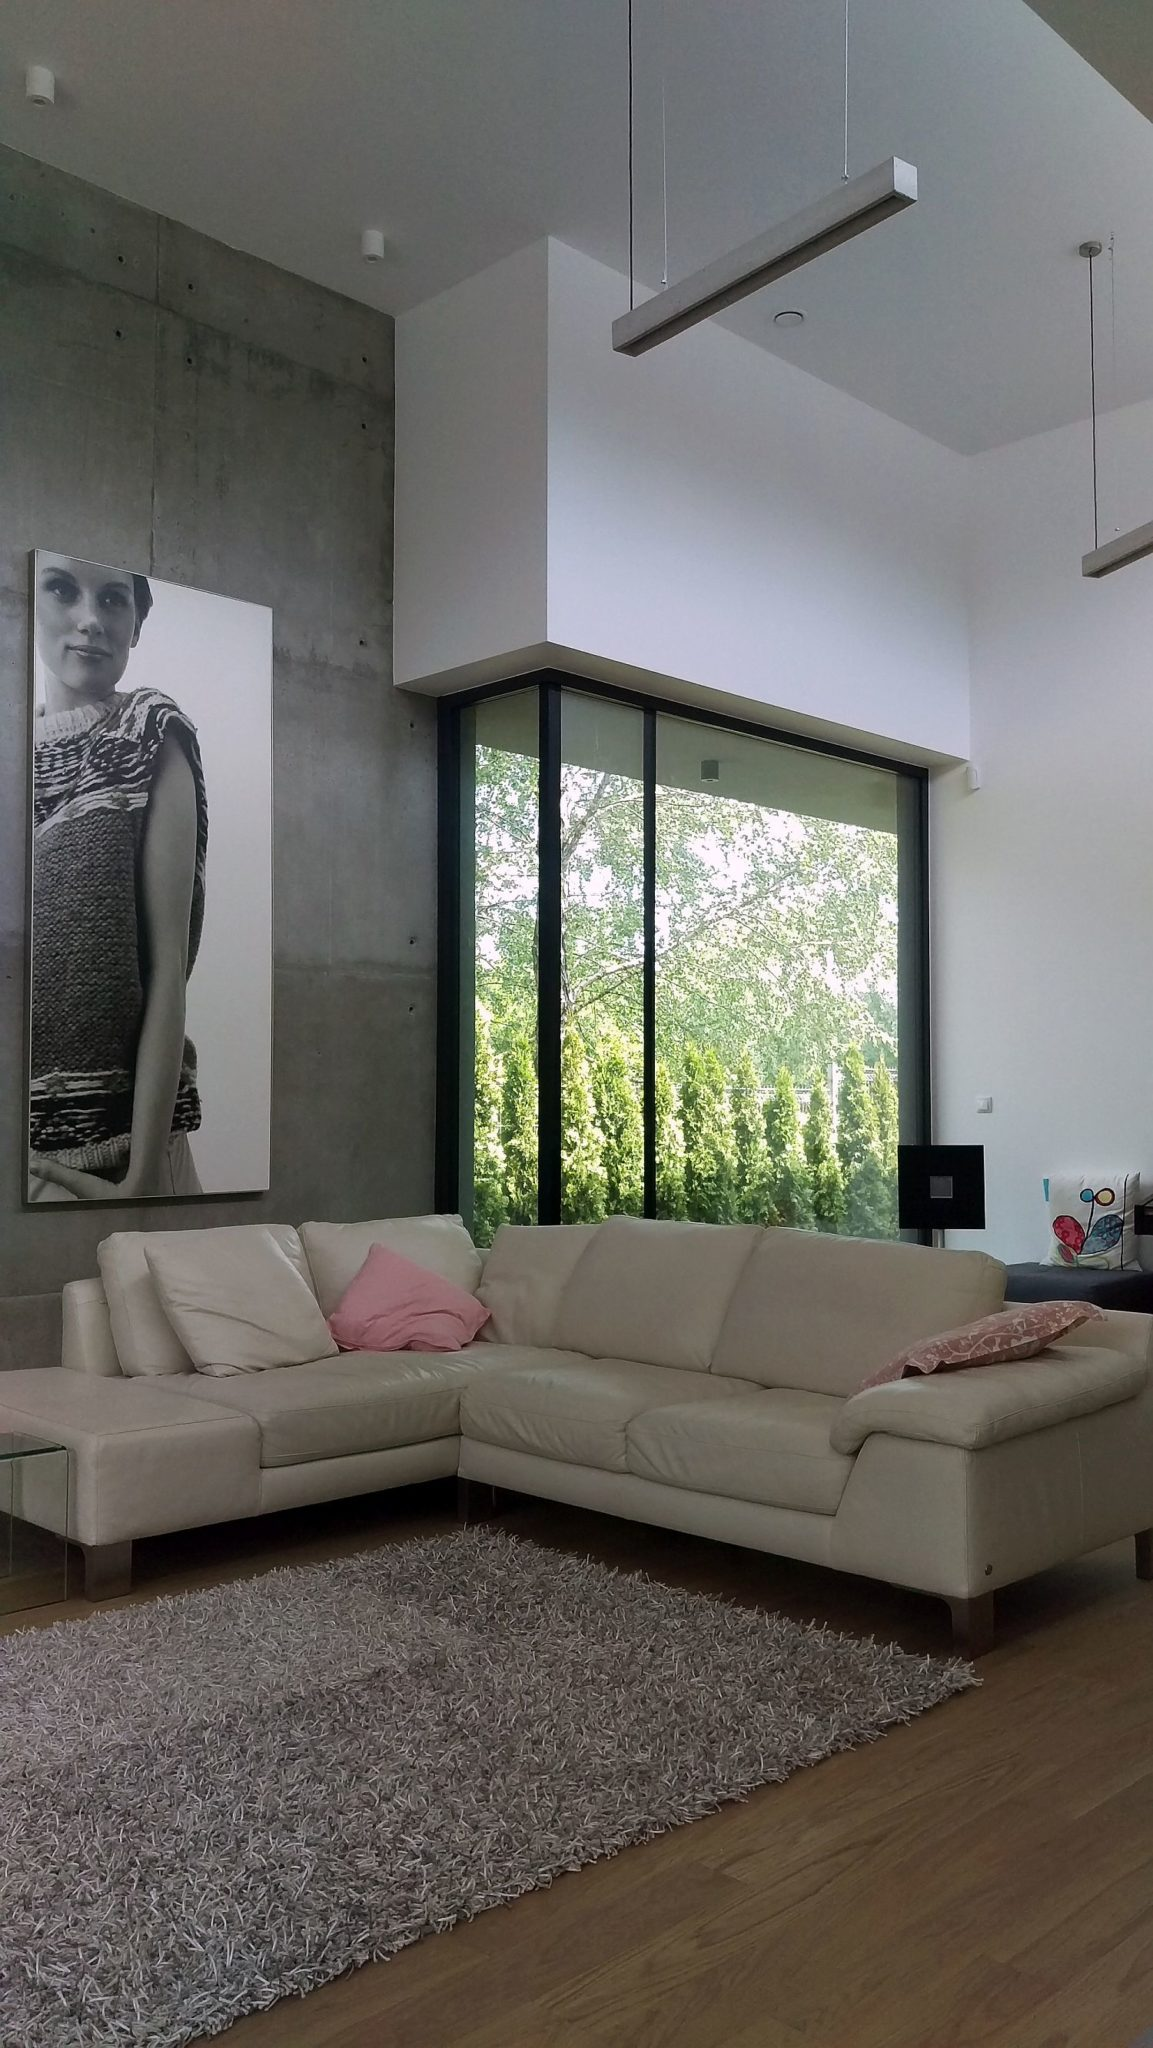 Sectional-couch-in-white-for-the-double-height-living-room